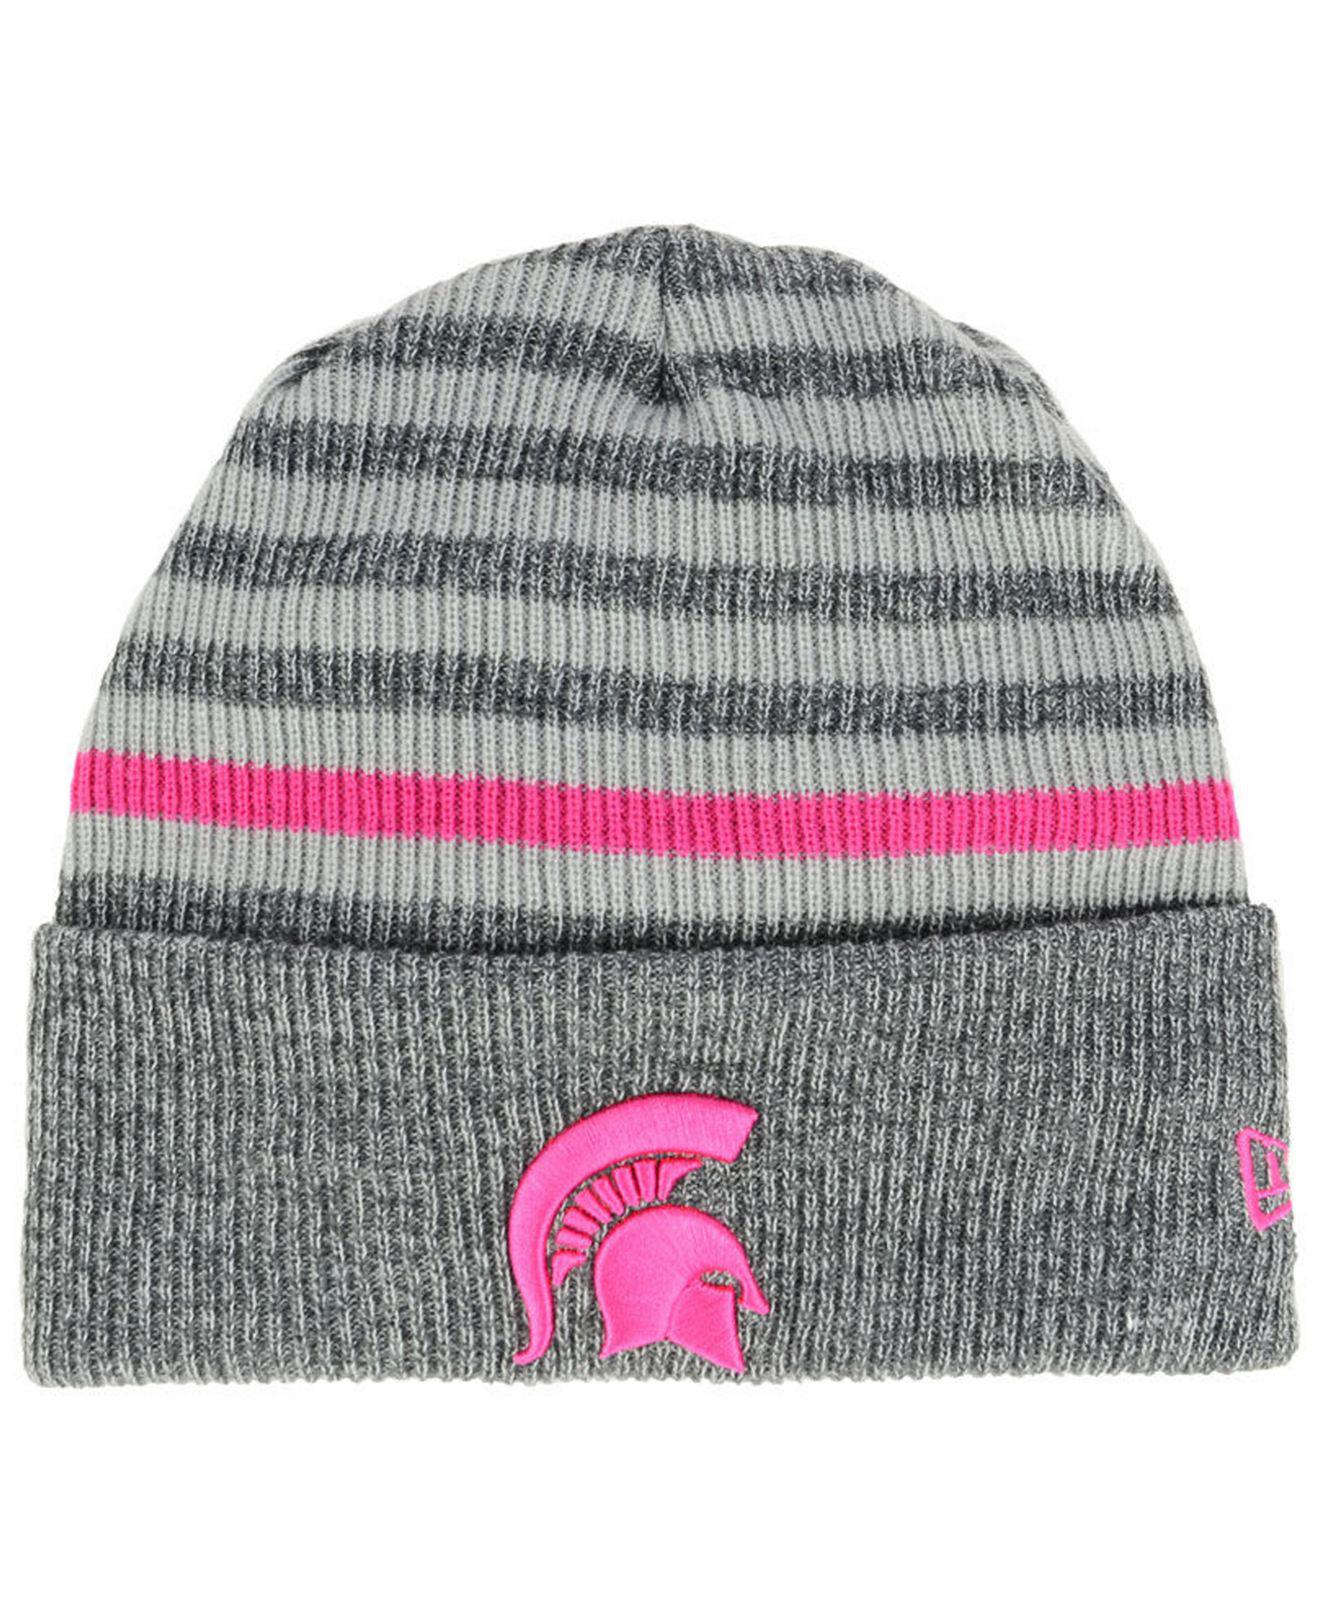 Lyst - KTZ Michigan State Spartans Striped Chill Knit Hat in Gray d16d65802cde